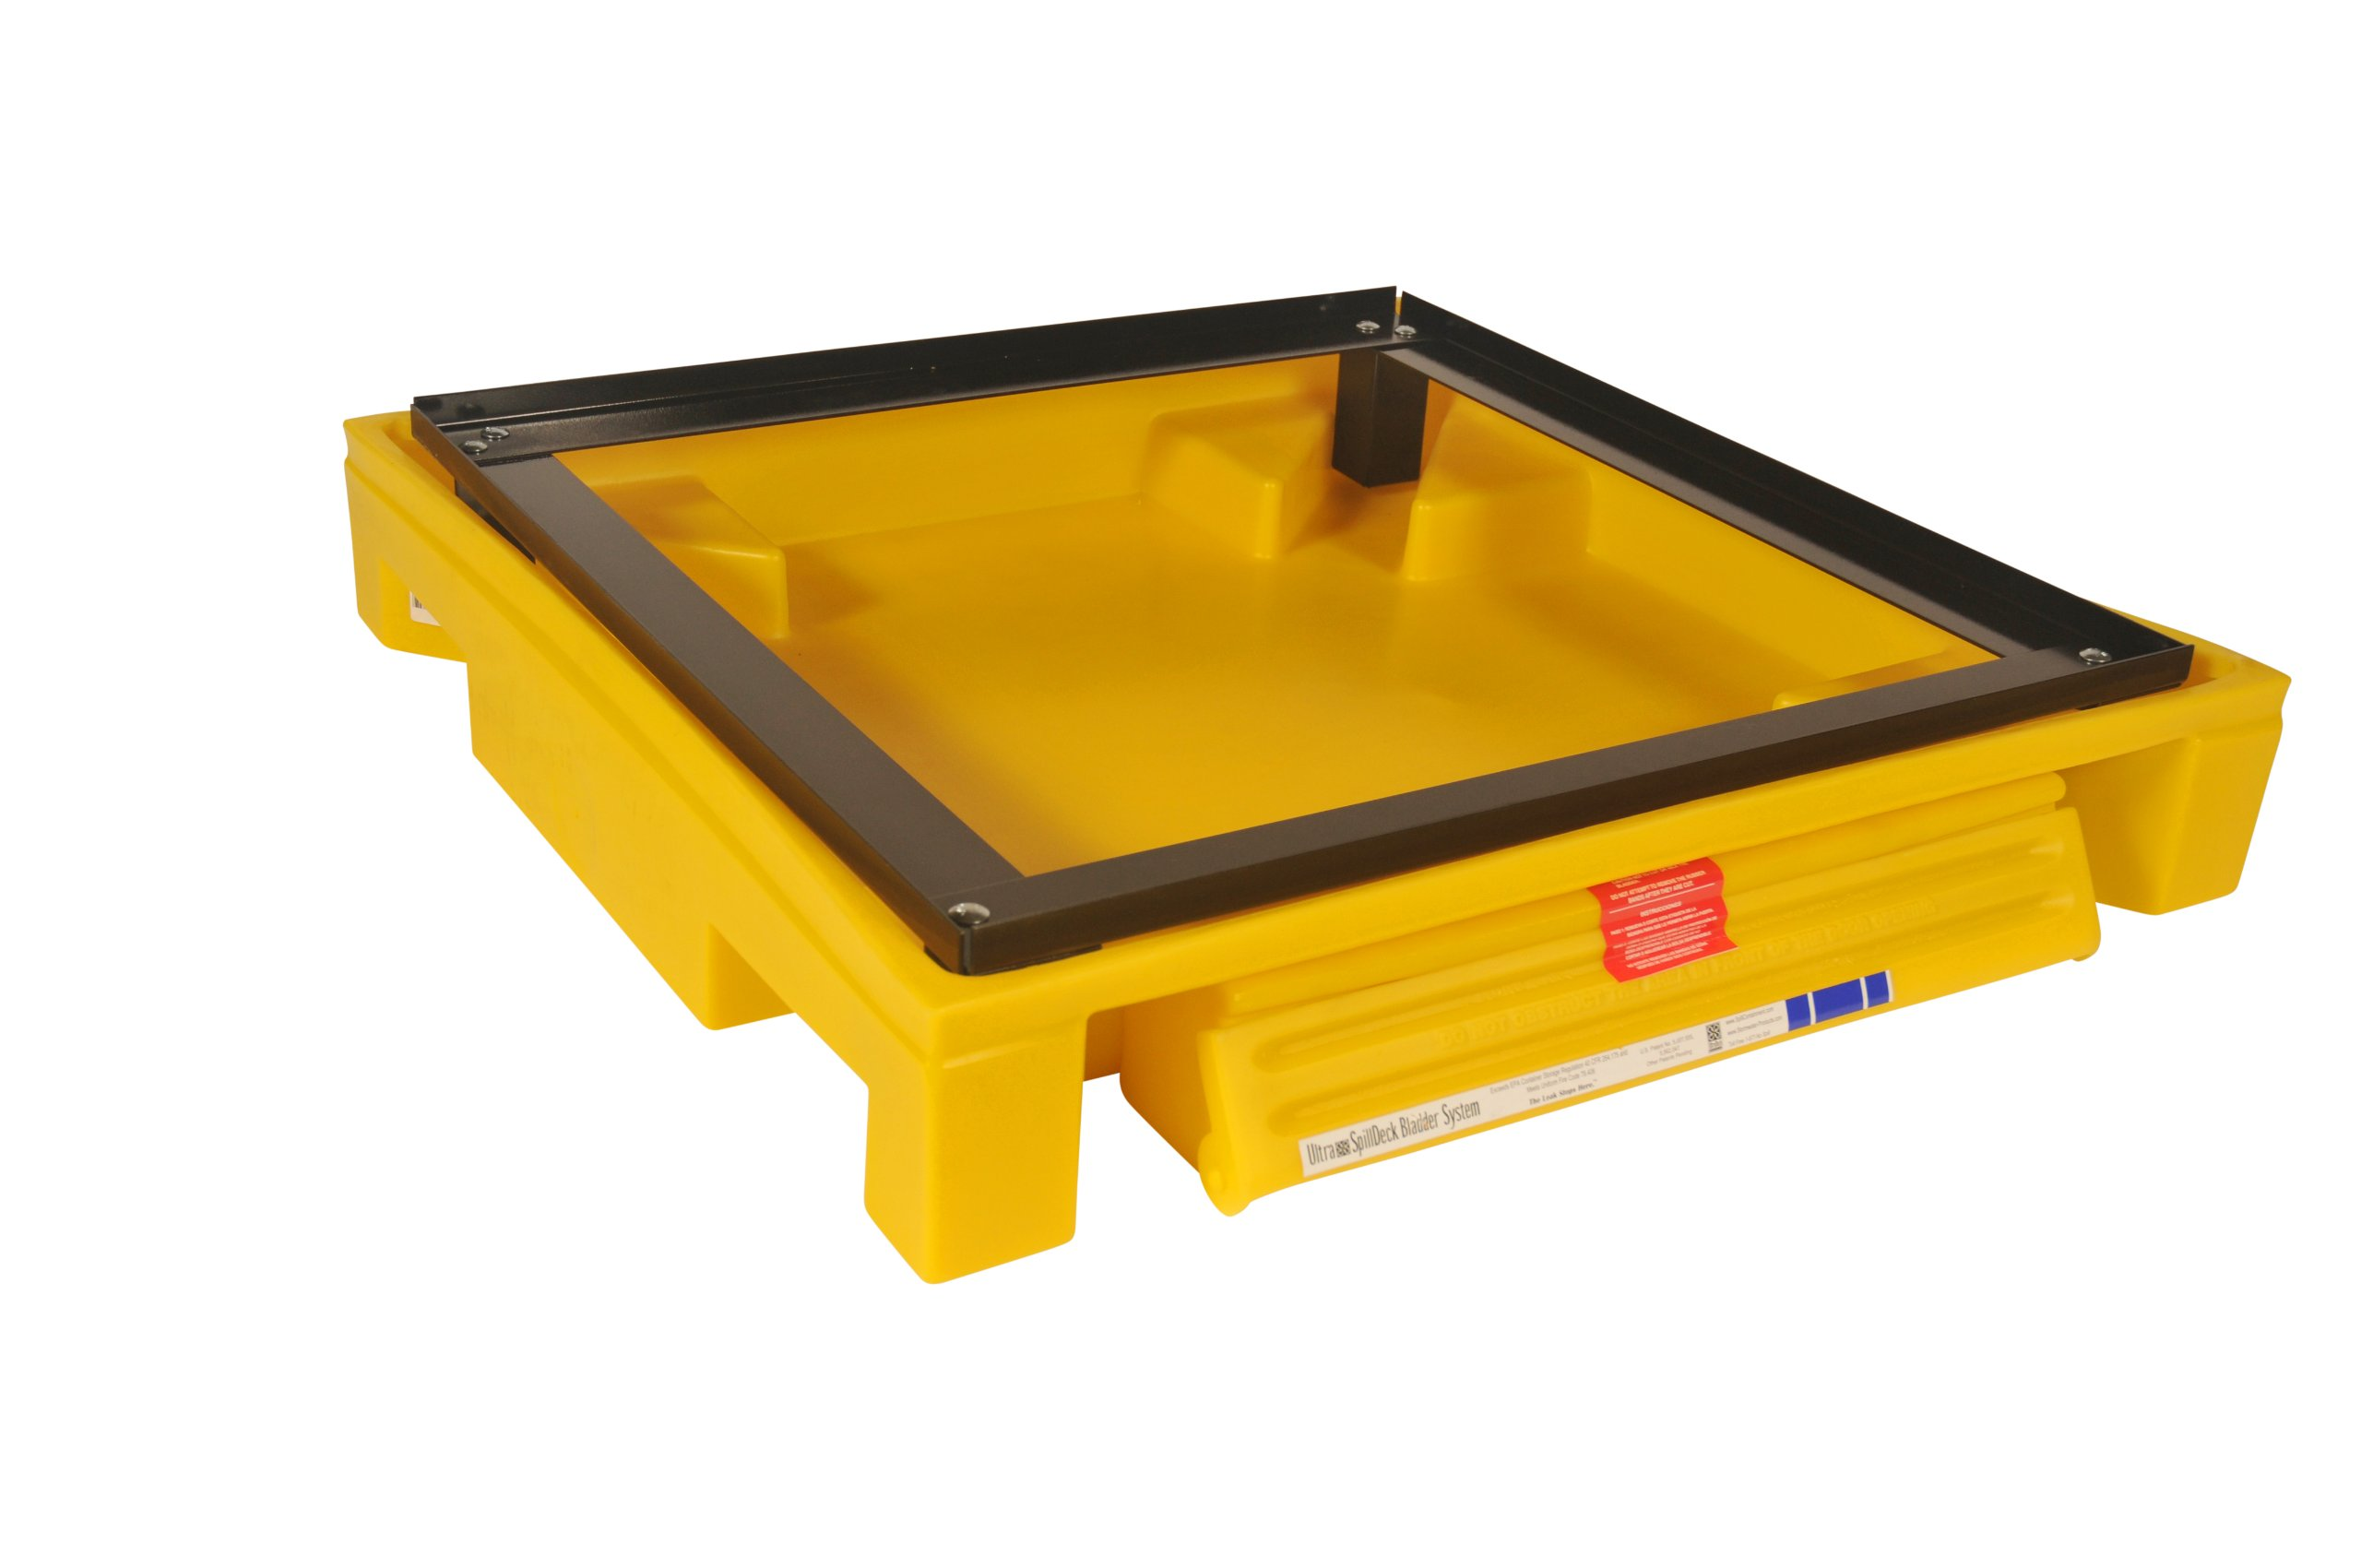 UltraTech 2420 1-Drum Ultra-Safety Cabinet Bladder System, 1500 lbs Load Capacity, 5 Year Warranty